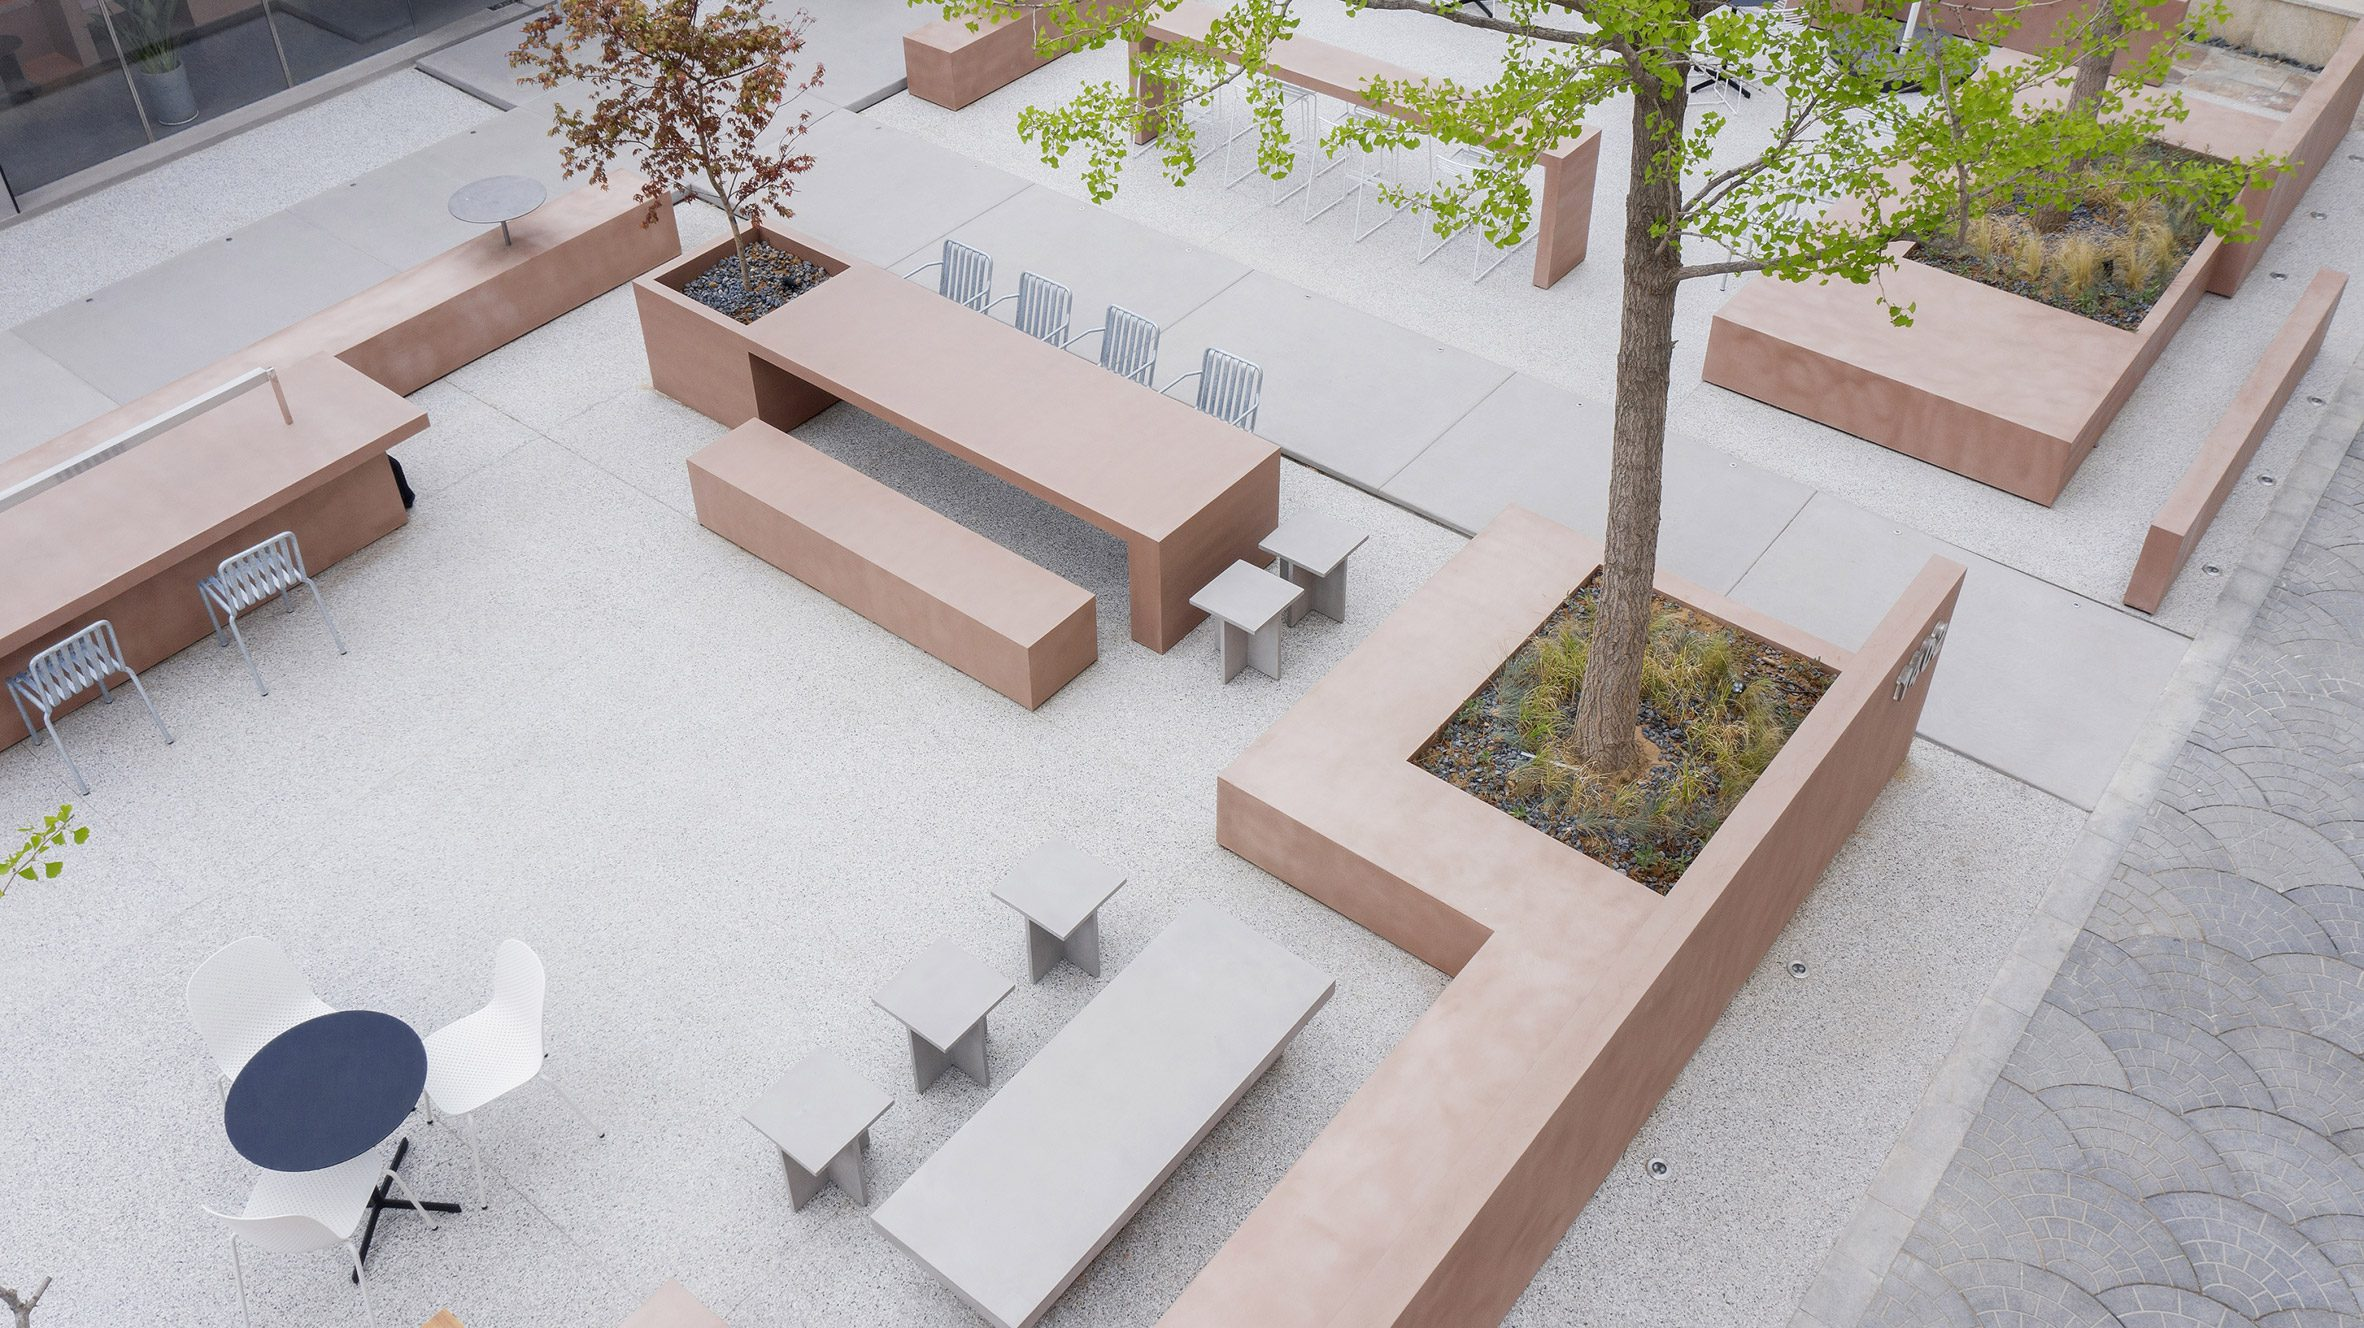 Outdoor seating area with blocky furniture